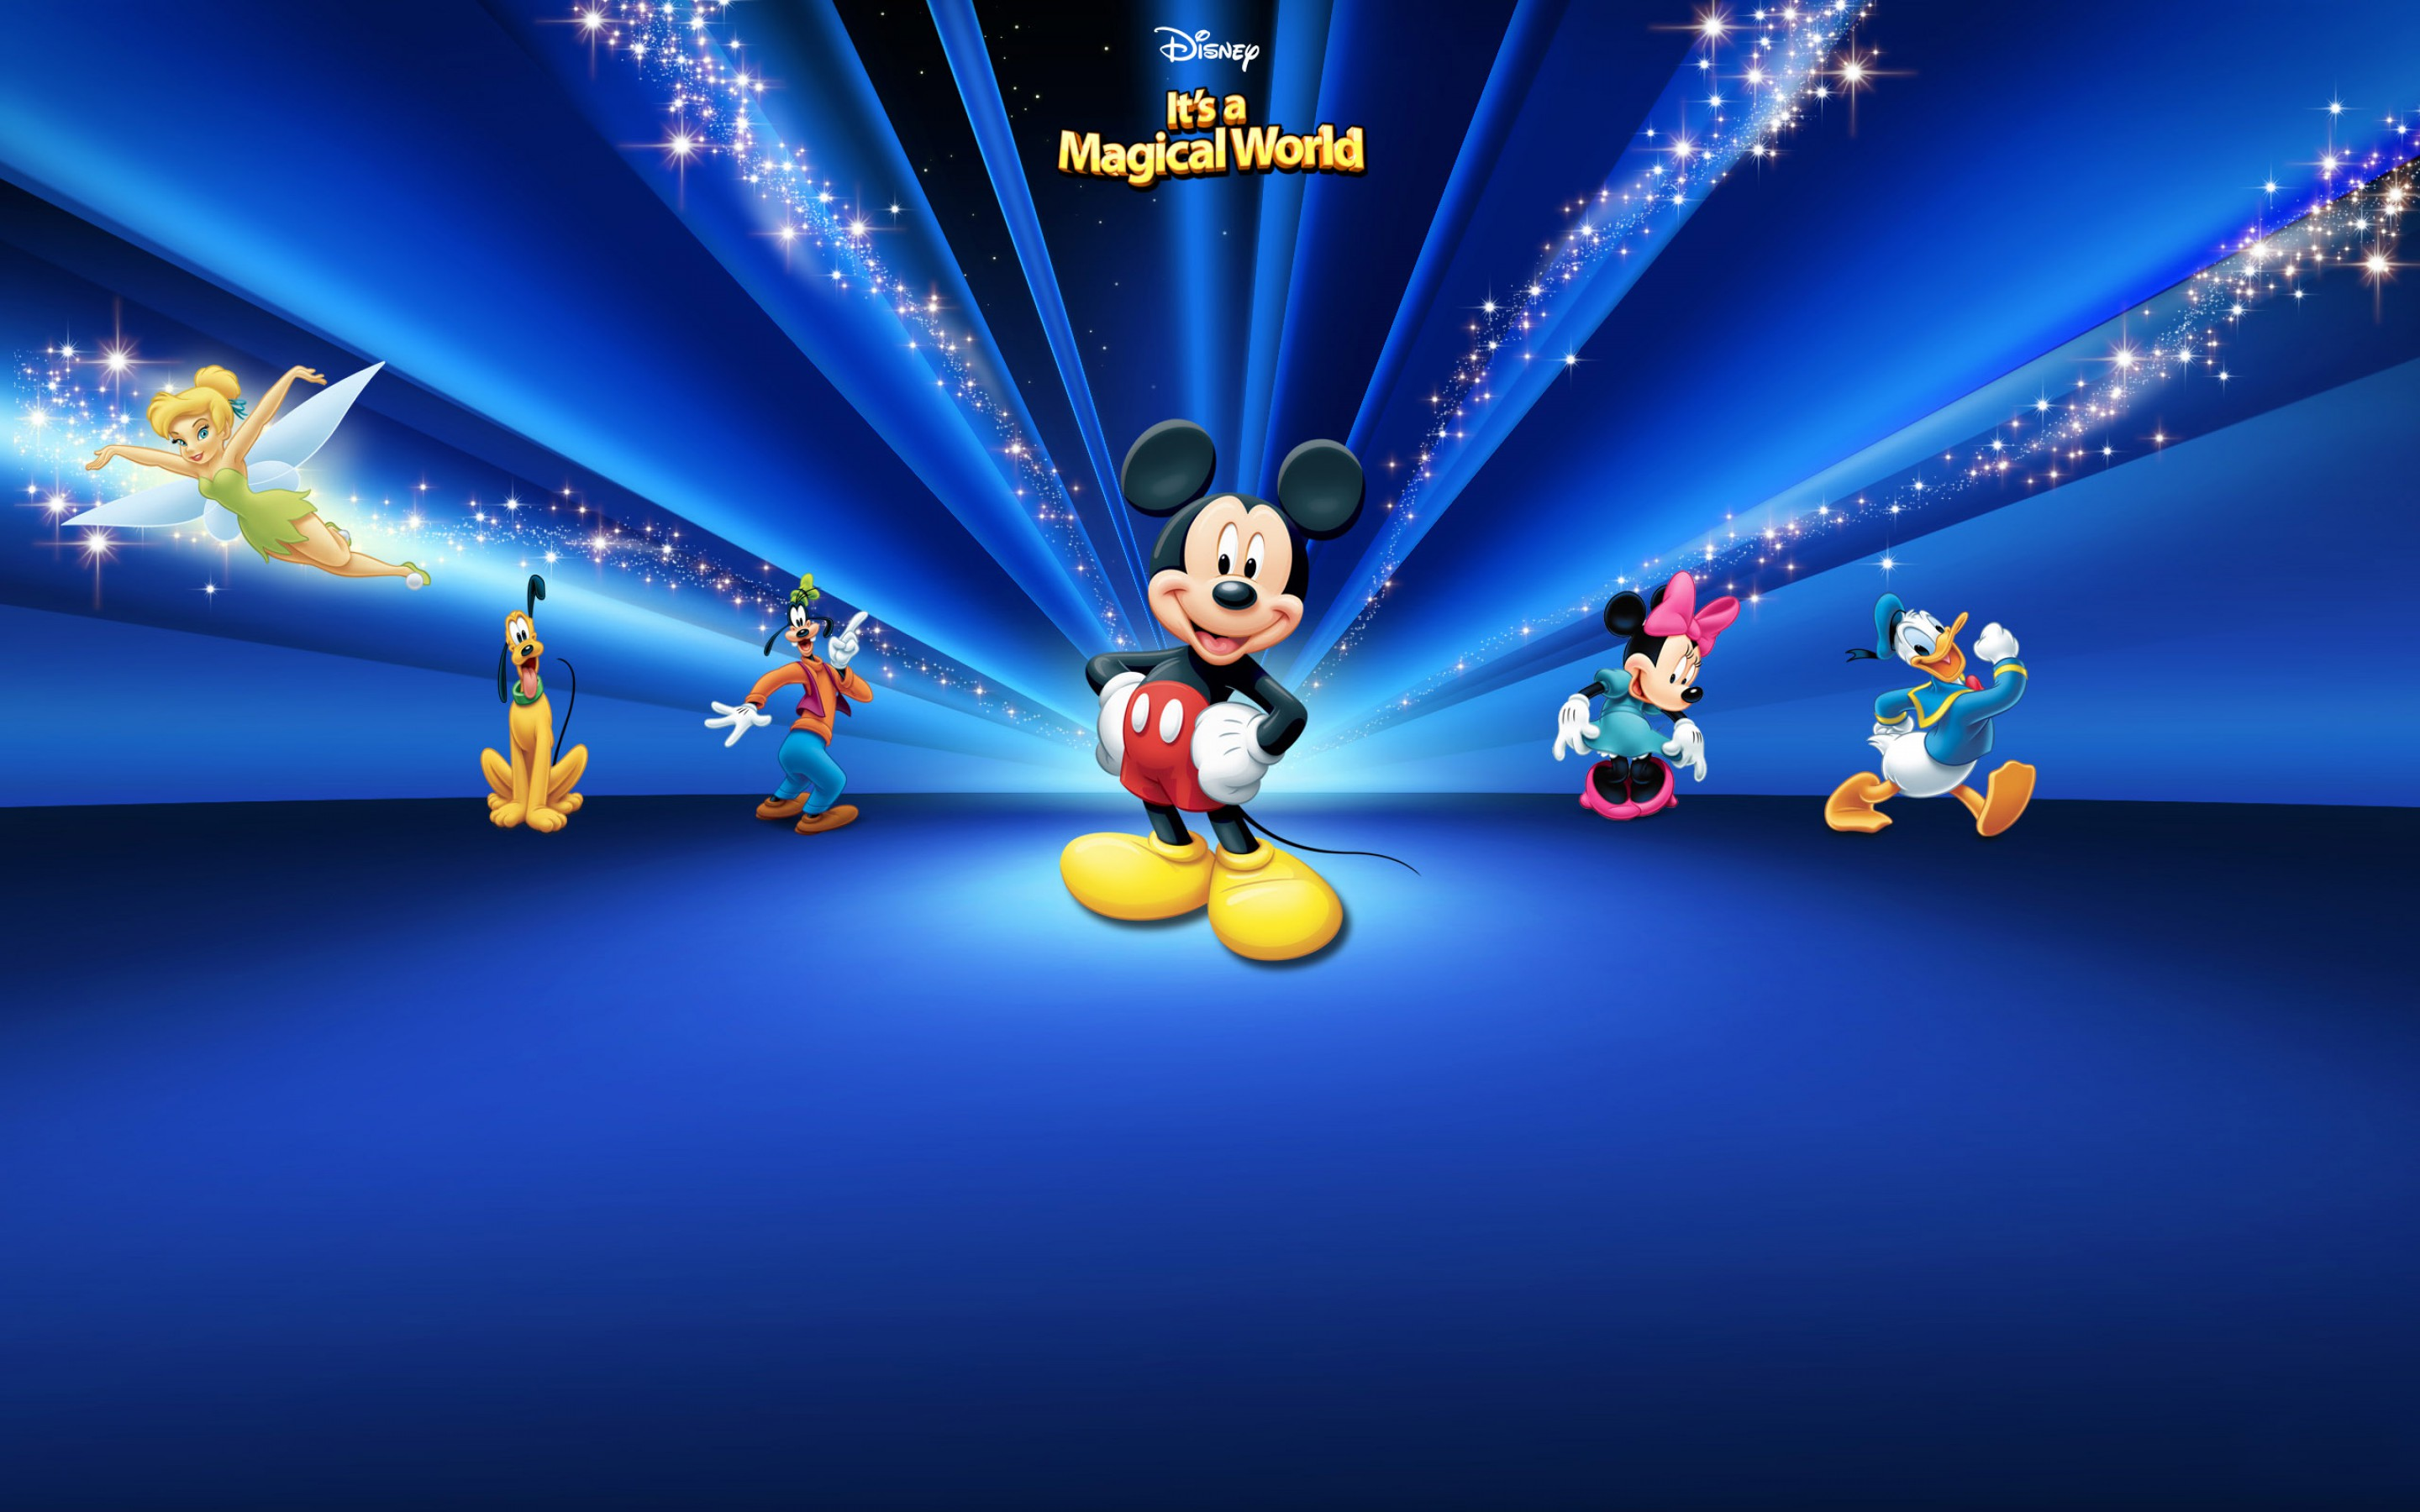 Disney Cars Wallpaper Free Download Disney Mickey Mouse And Friends Hd Wallpaper For Laptop